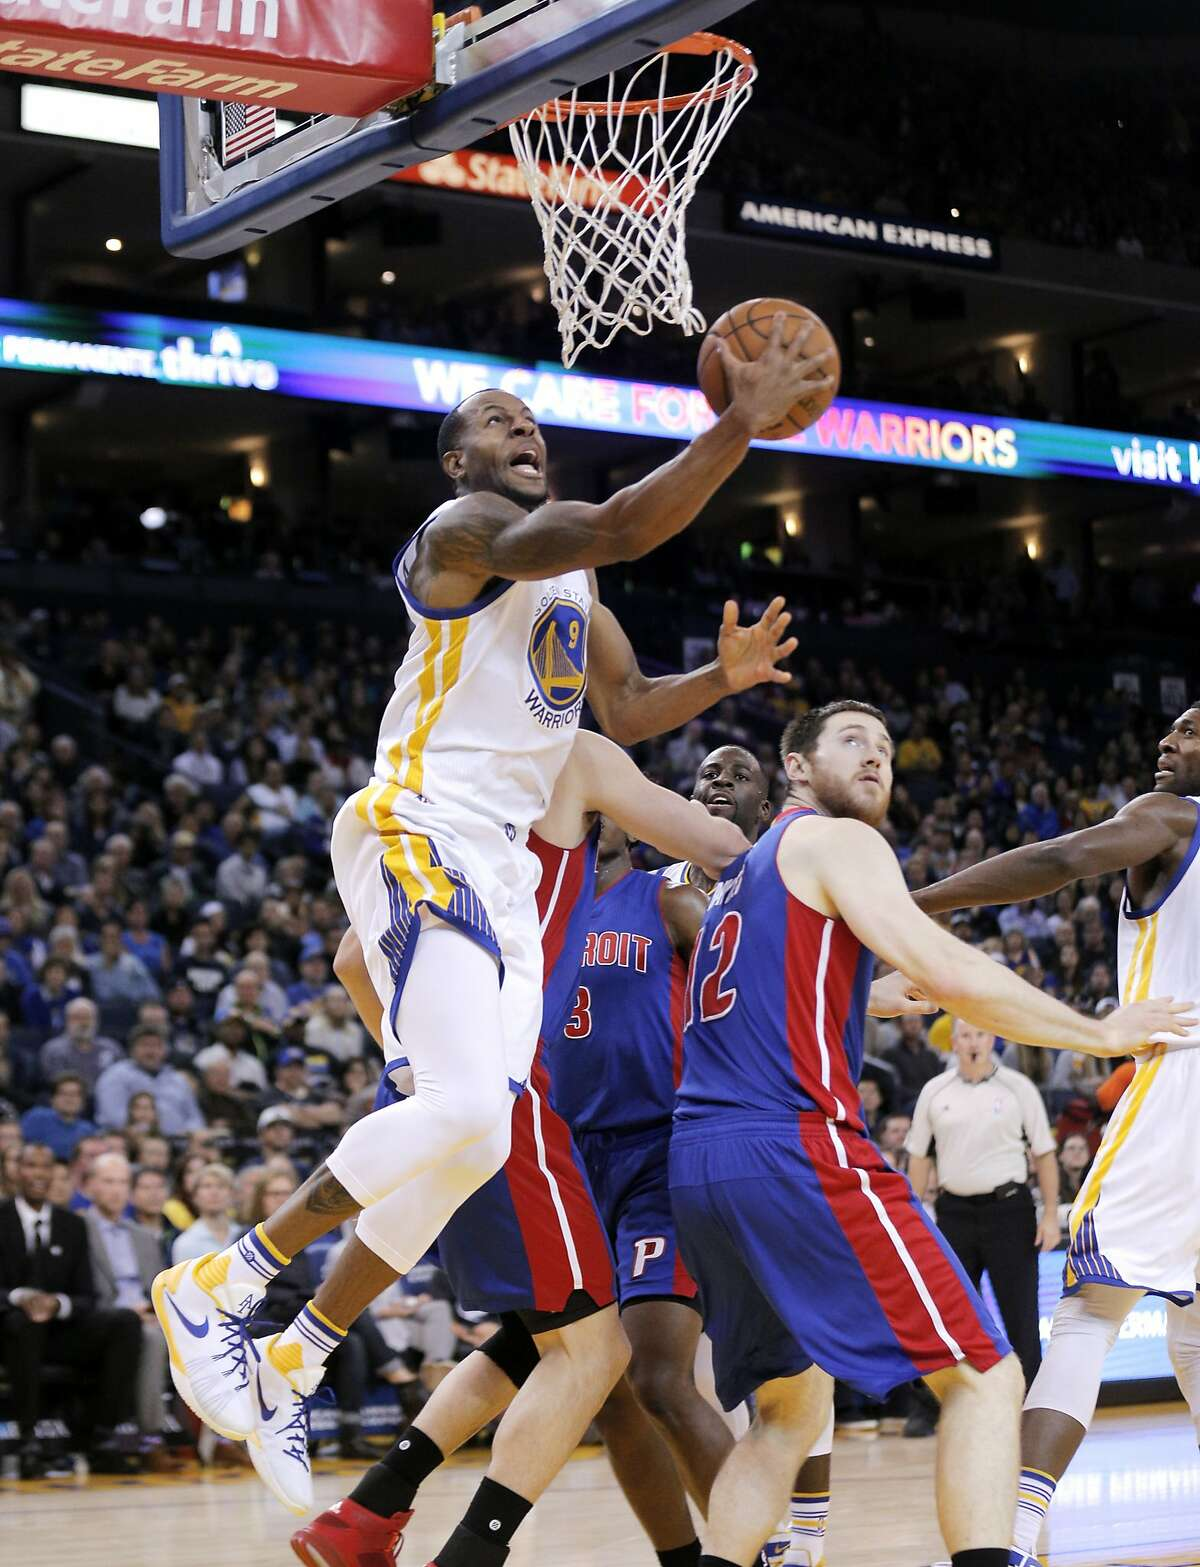 Andre Iguodala (9) drives under the basket in the first half as the Golden State Warriors played the Detroit Pistons at Oracle Arena in Oakland, Calif., on Monday, November 9, 2015.